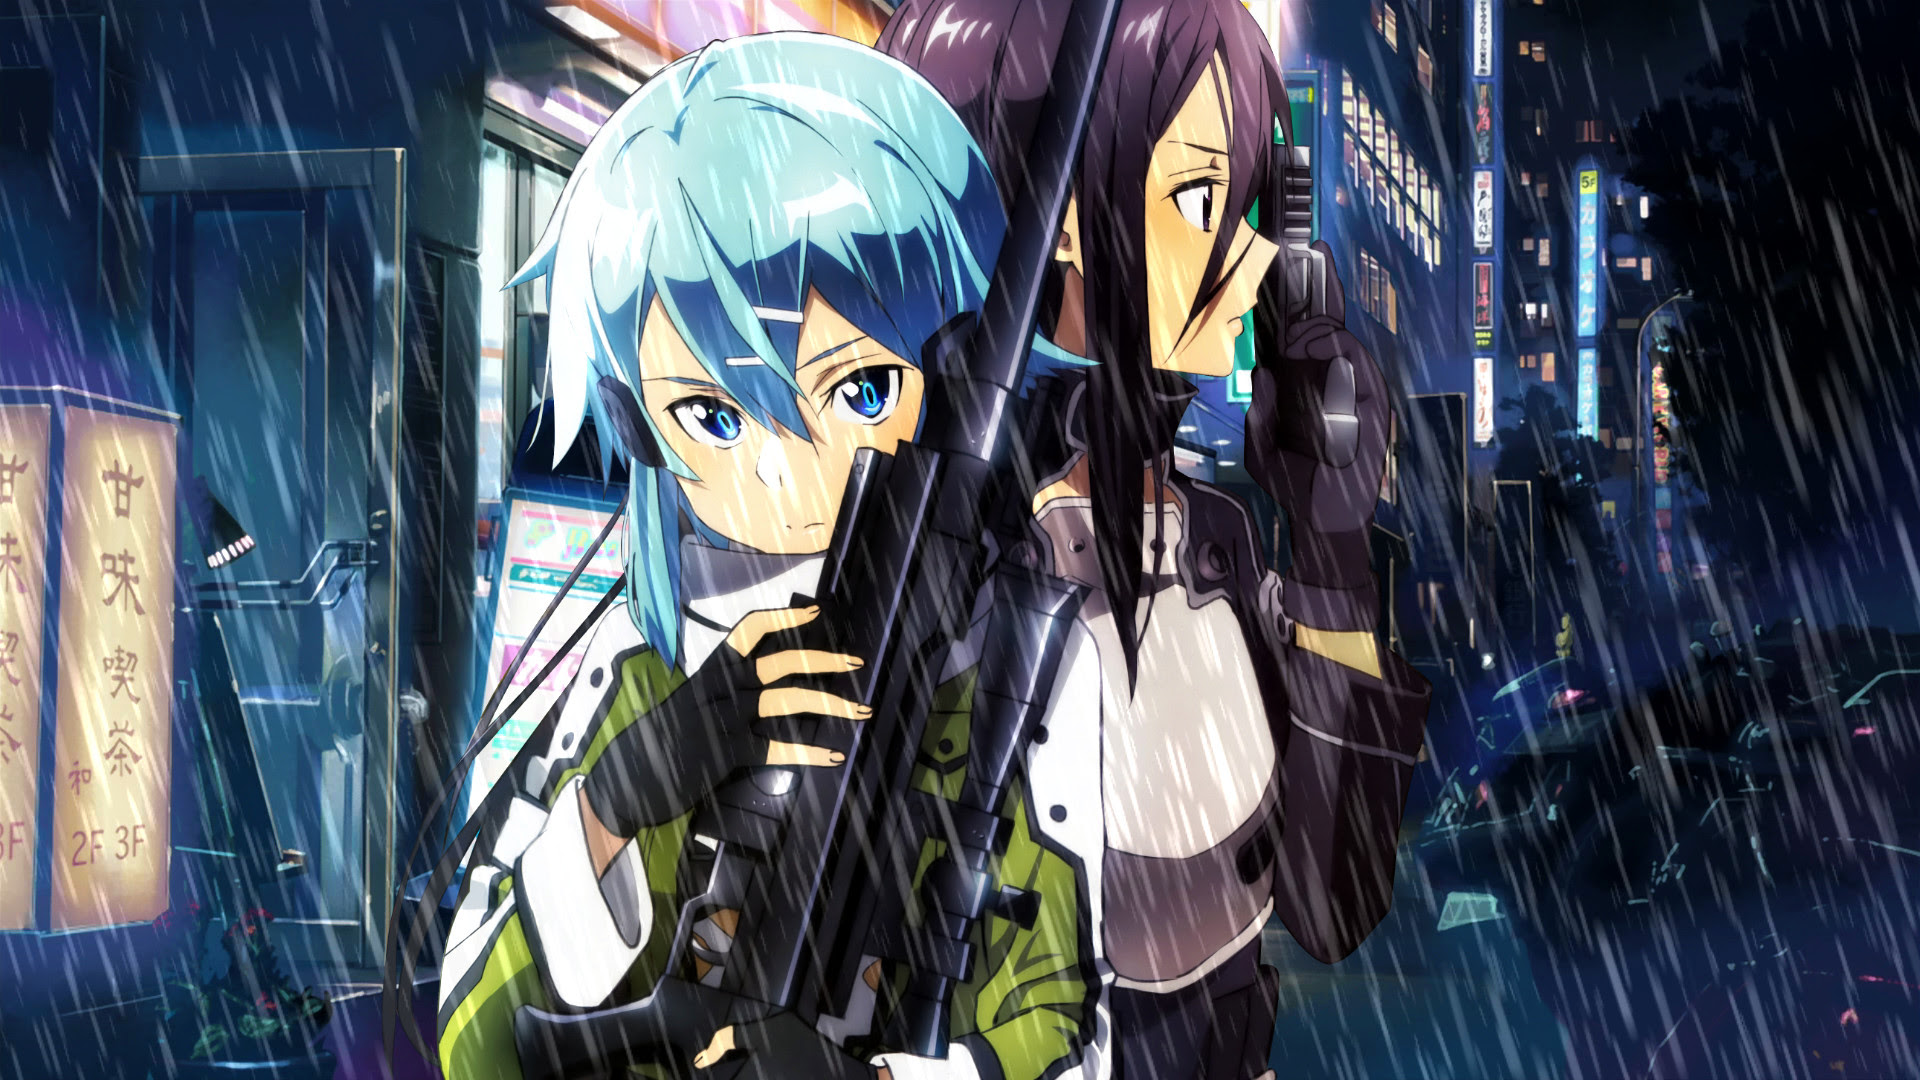 Sinon Hd Wallpaper 78 Images